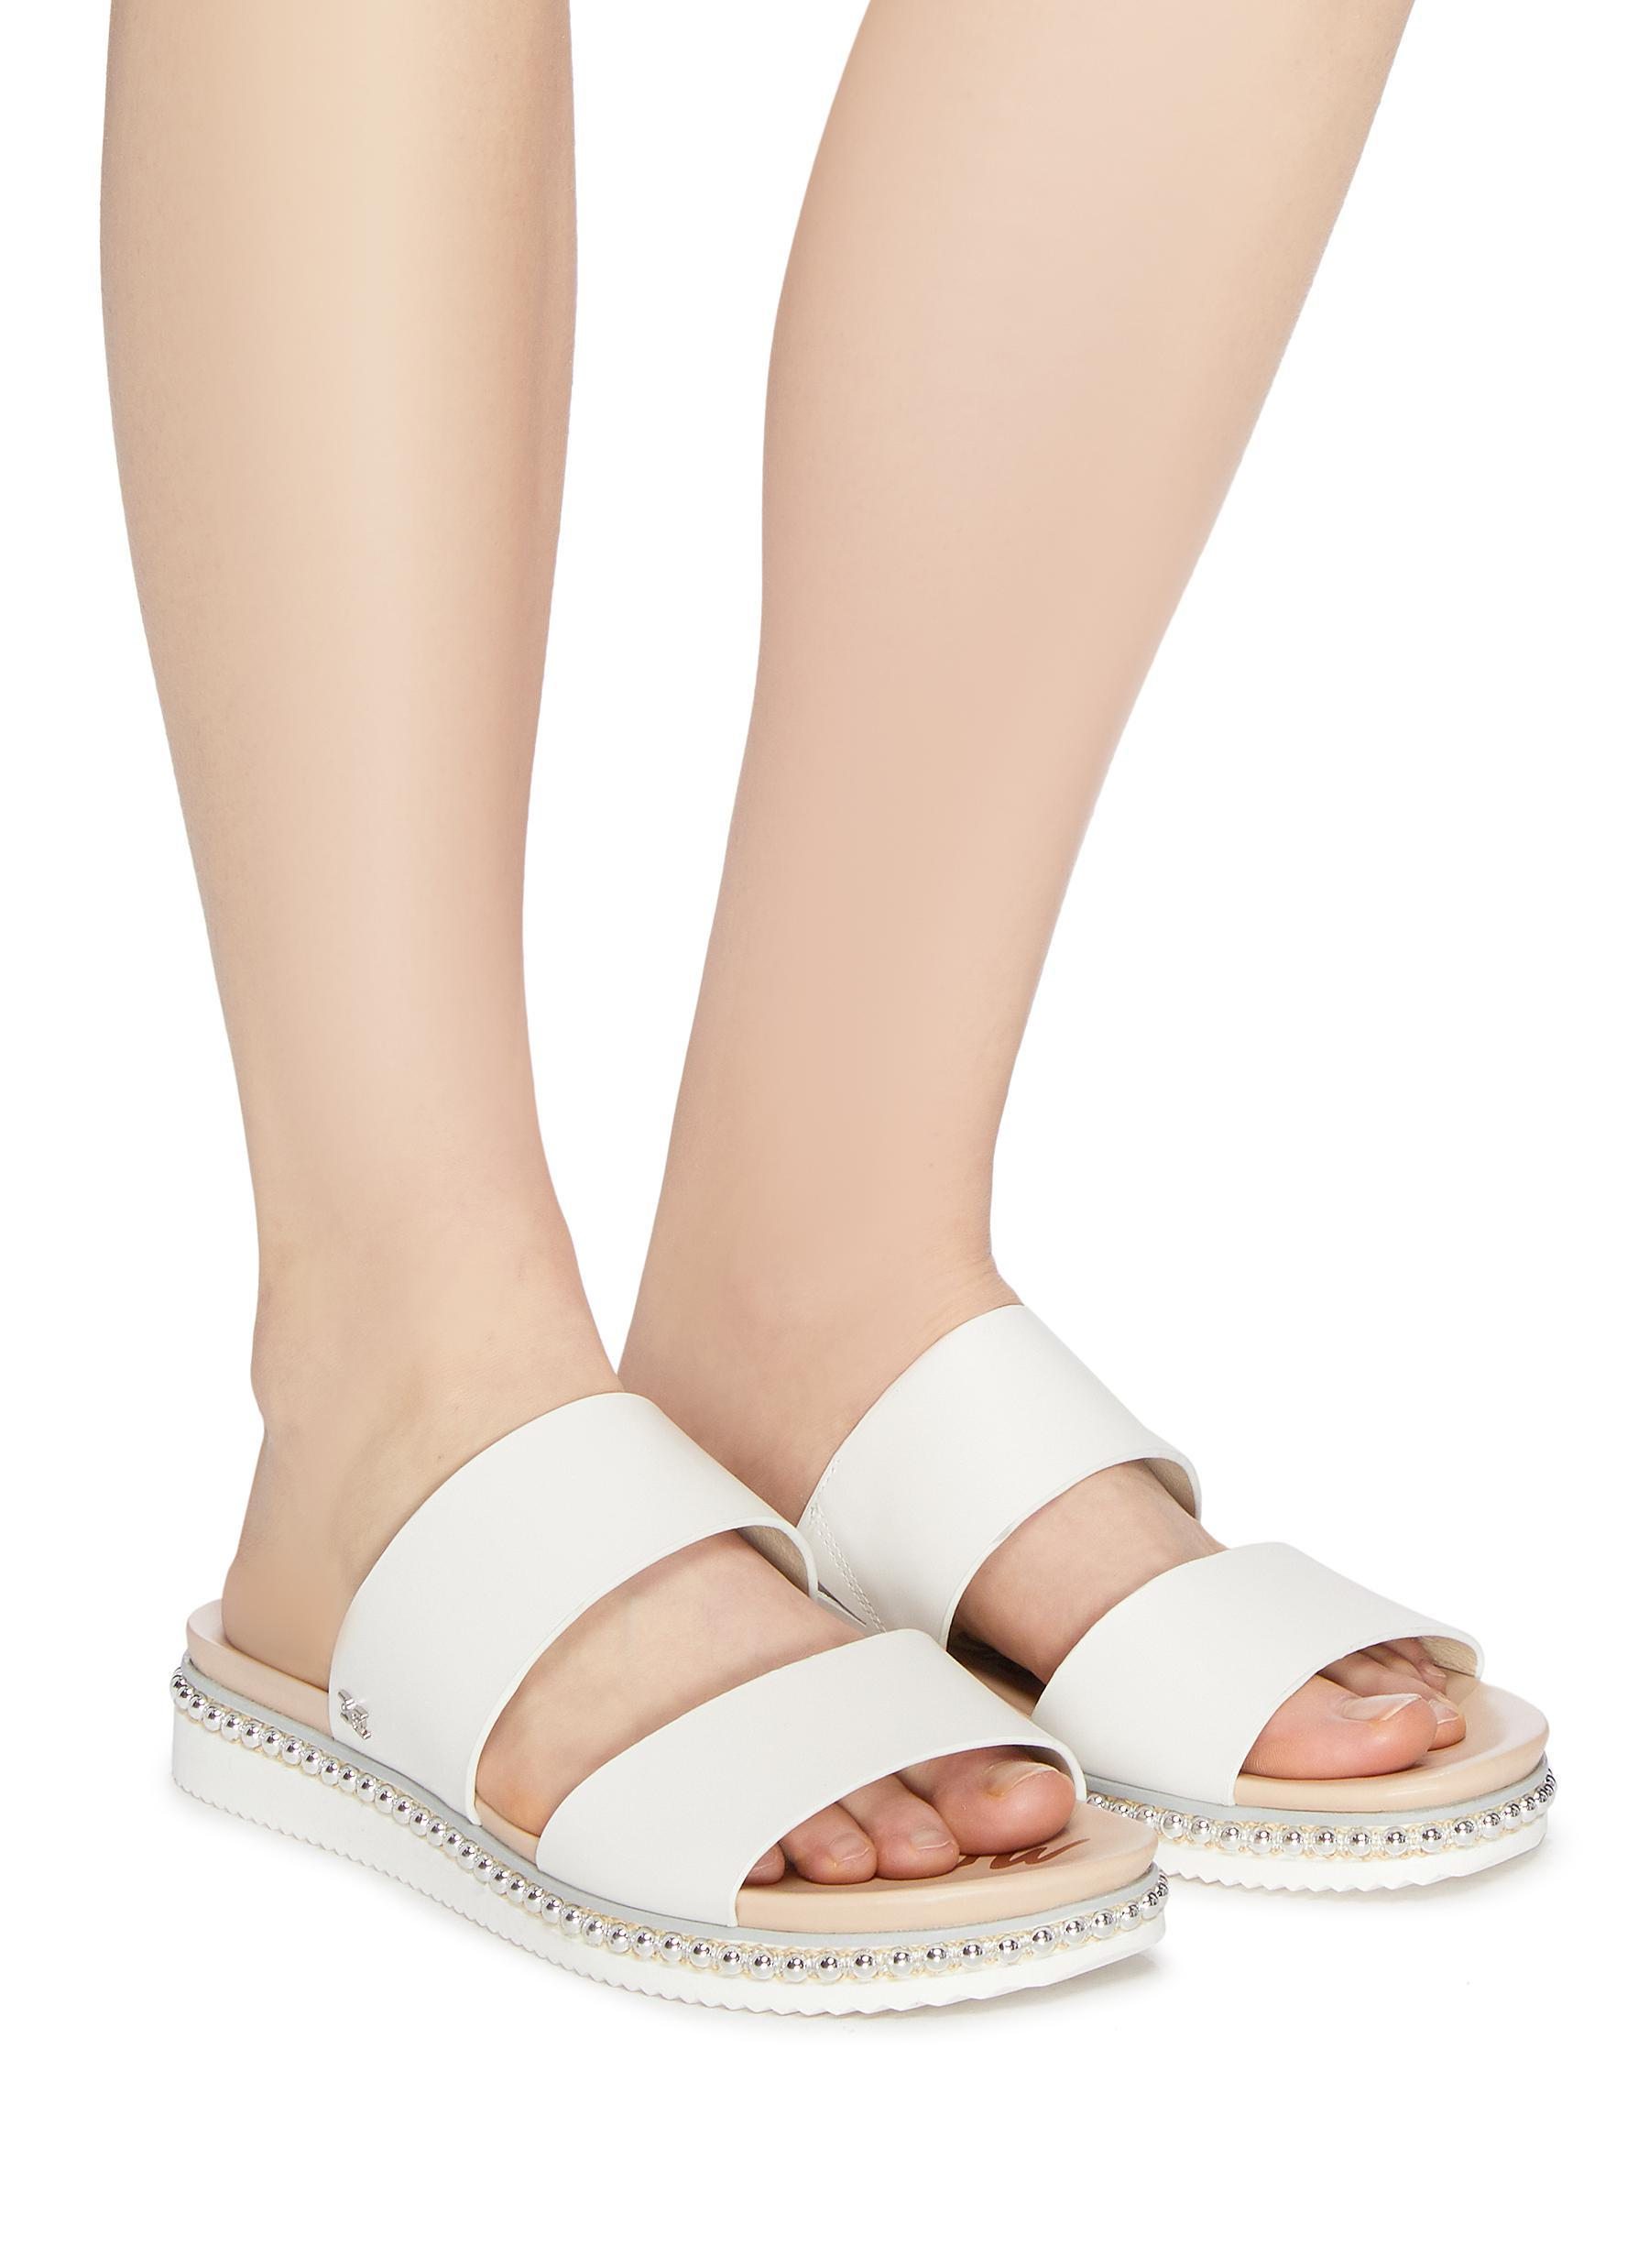 de739d4c7 Sam Edelman White 'asha' Stud Welt Leather Slide Sandals. View fullscreen